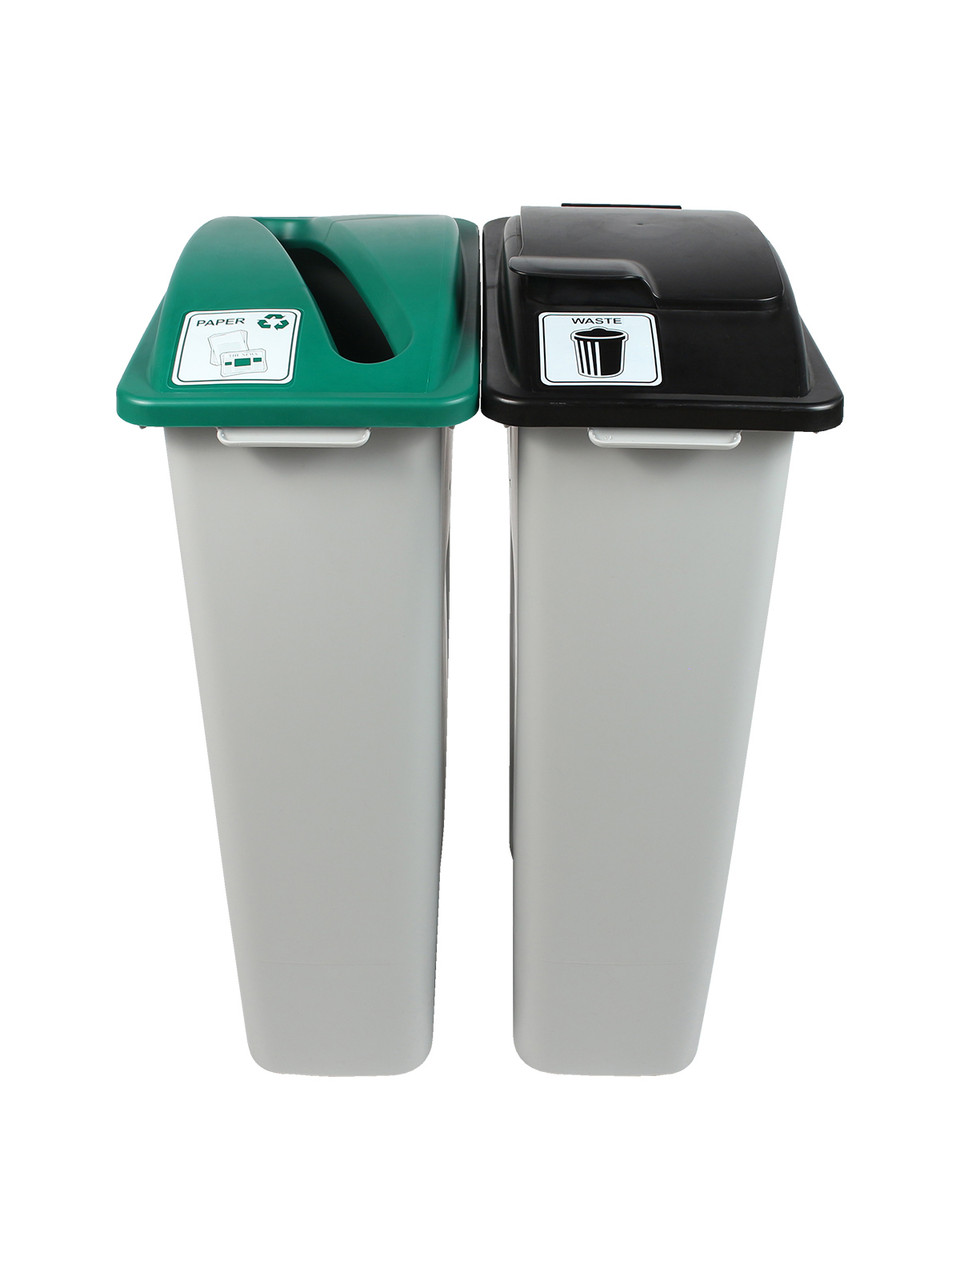 46 Gallon Simple Sort Skinny Trash Can Recycle Bin Combo 8105036-35 (Slot, Waste Lift Lid Openings)